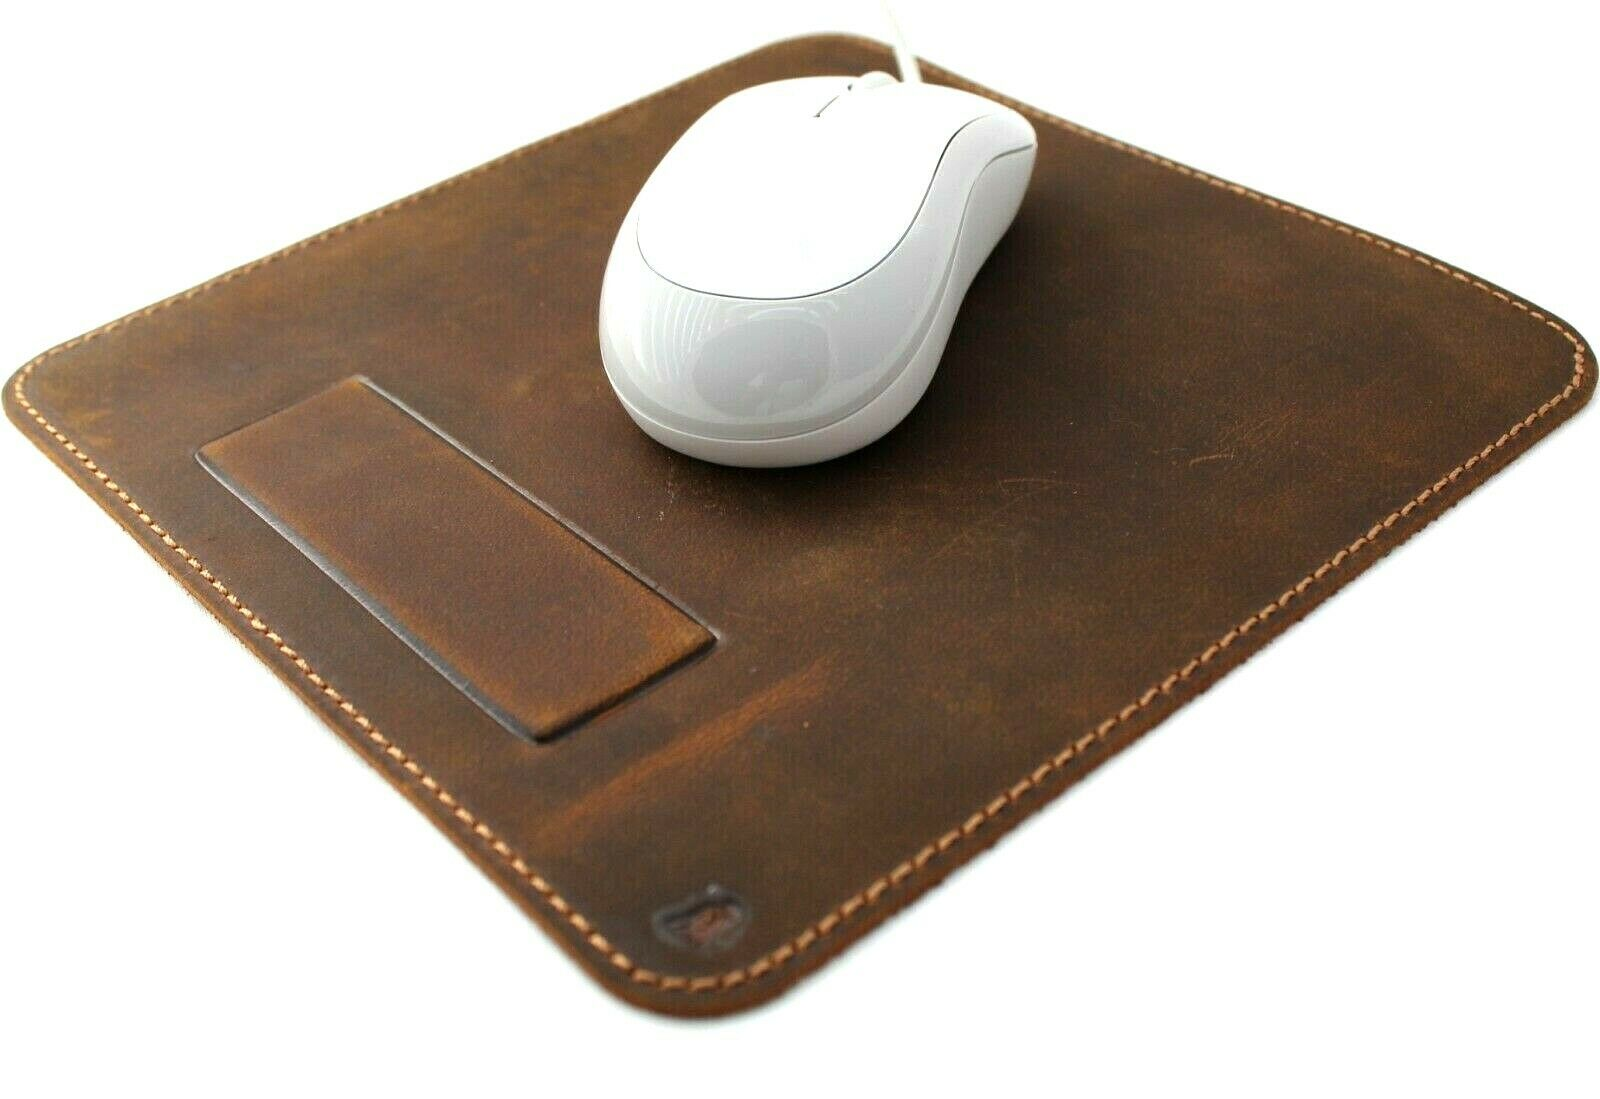 Image 31 - Handmade Genuine Leather Mouse Pad Luxury Handcrafted soft Vintage Retro Case